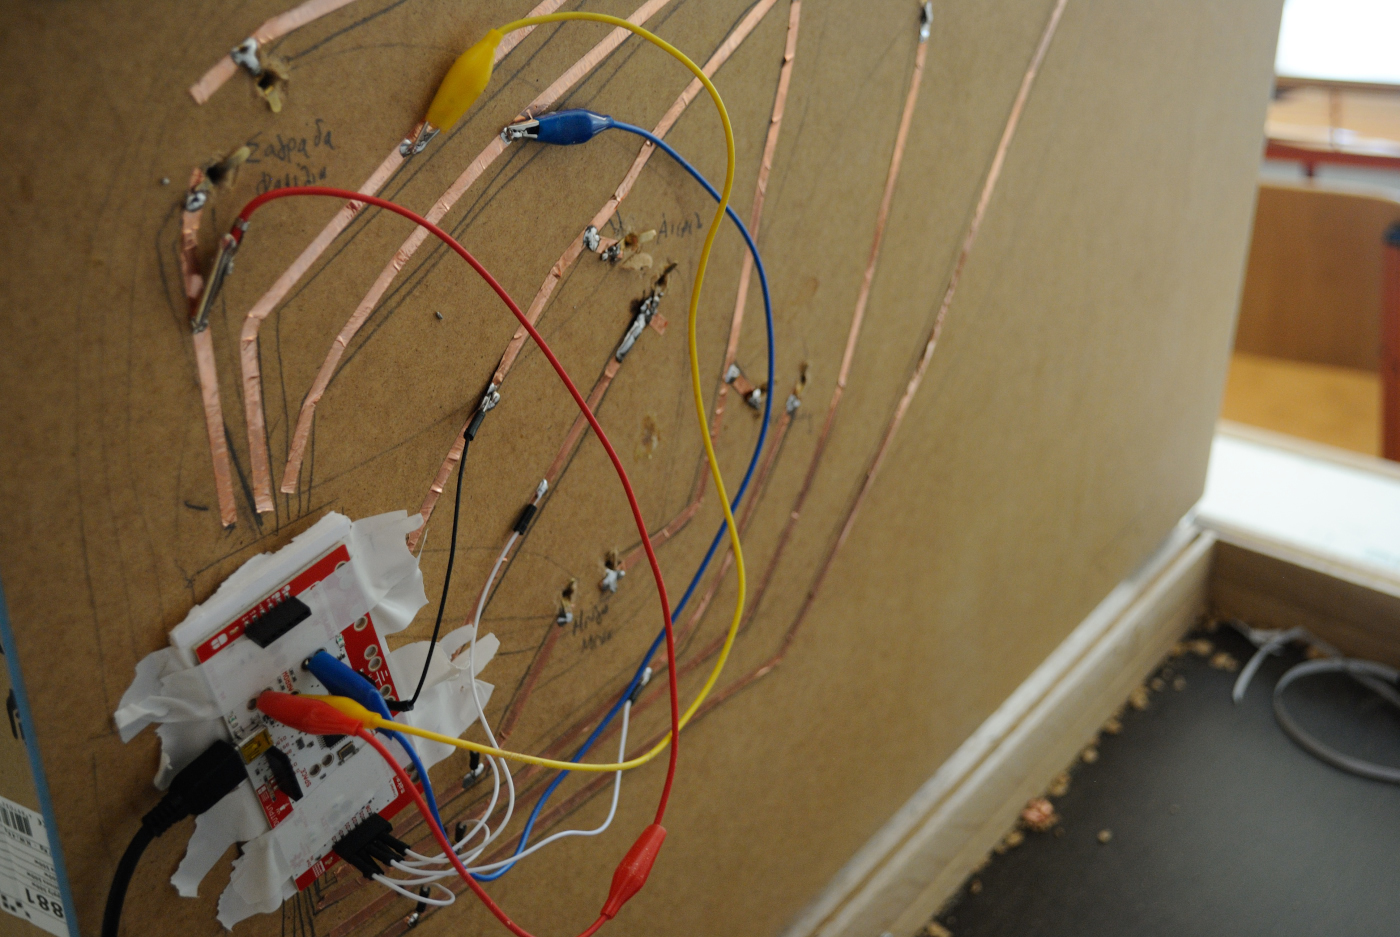 hight resolution of under the hood of the board